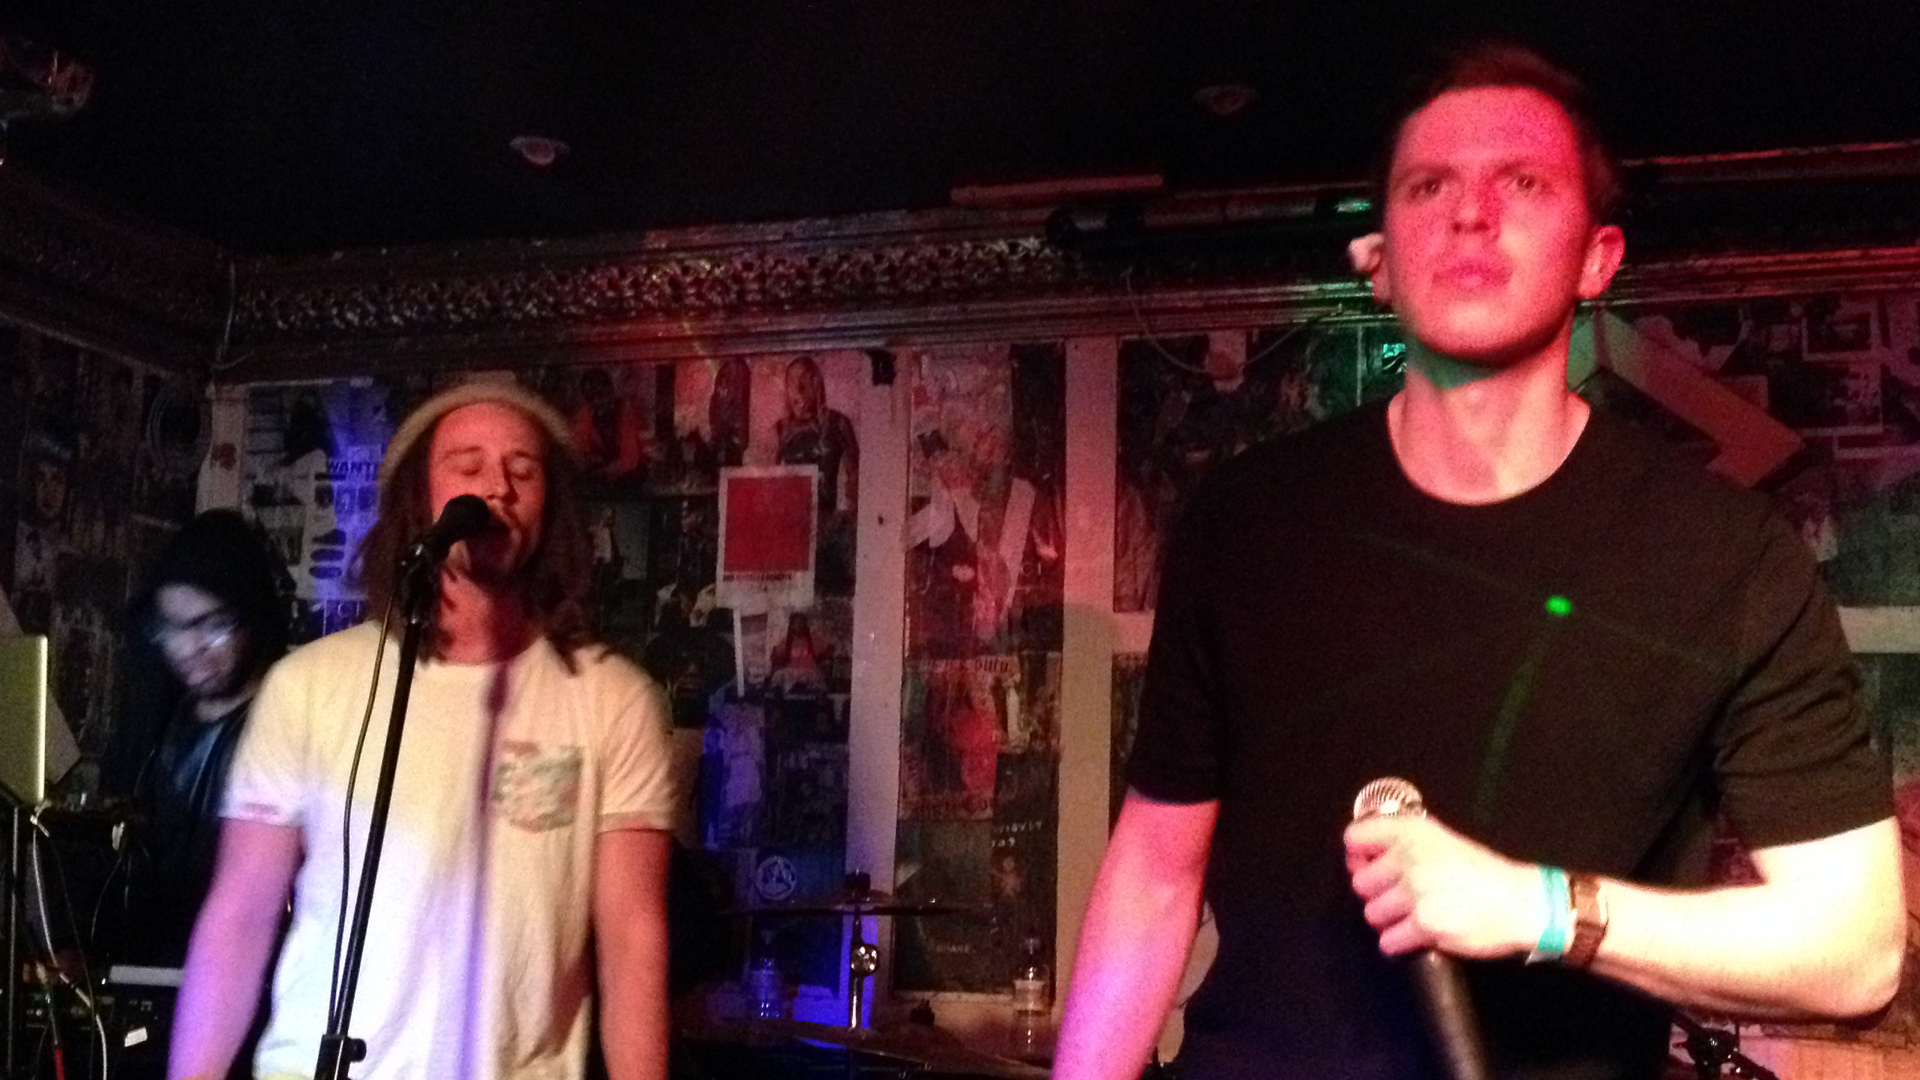 JP Cooper and Nick Brewer, The Victoria, Dalston, May 11, 2015, by Aaron Lee, 01 (1920x1080)